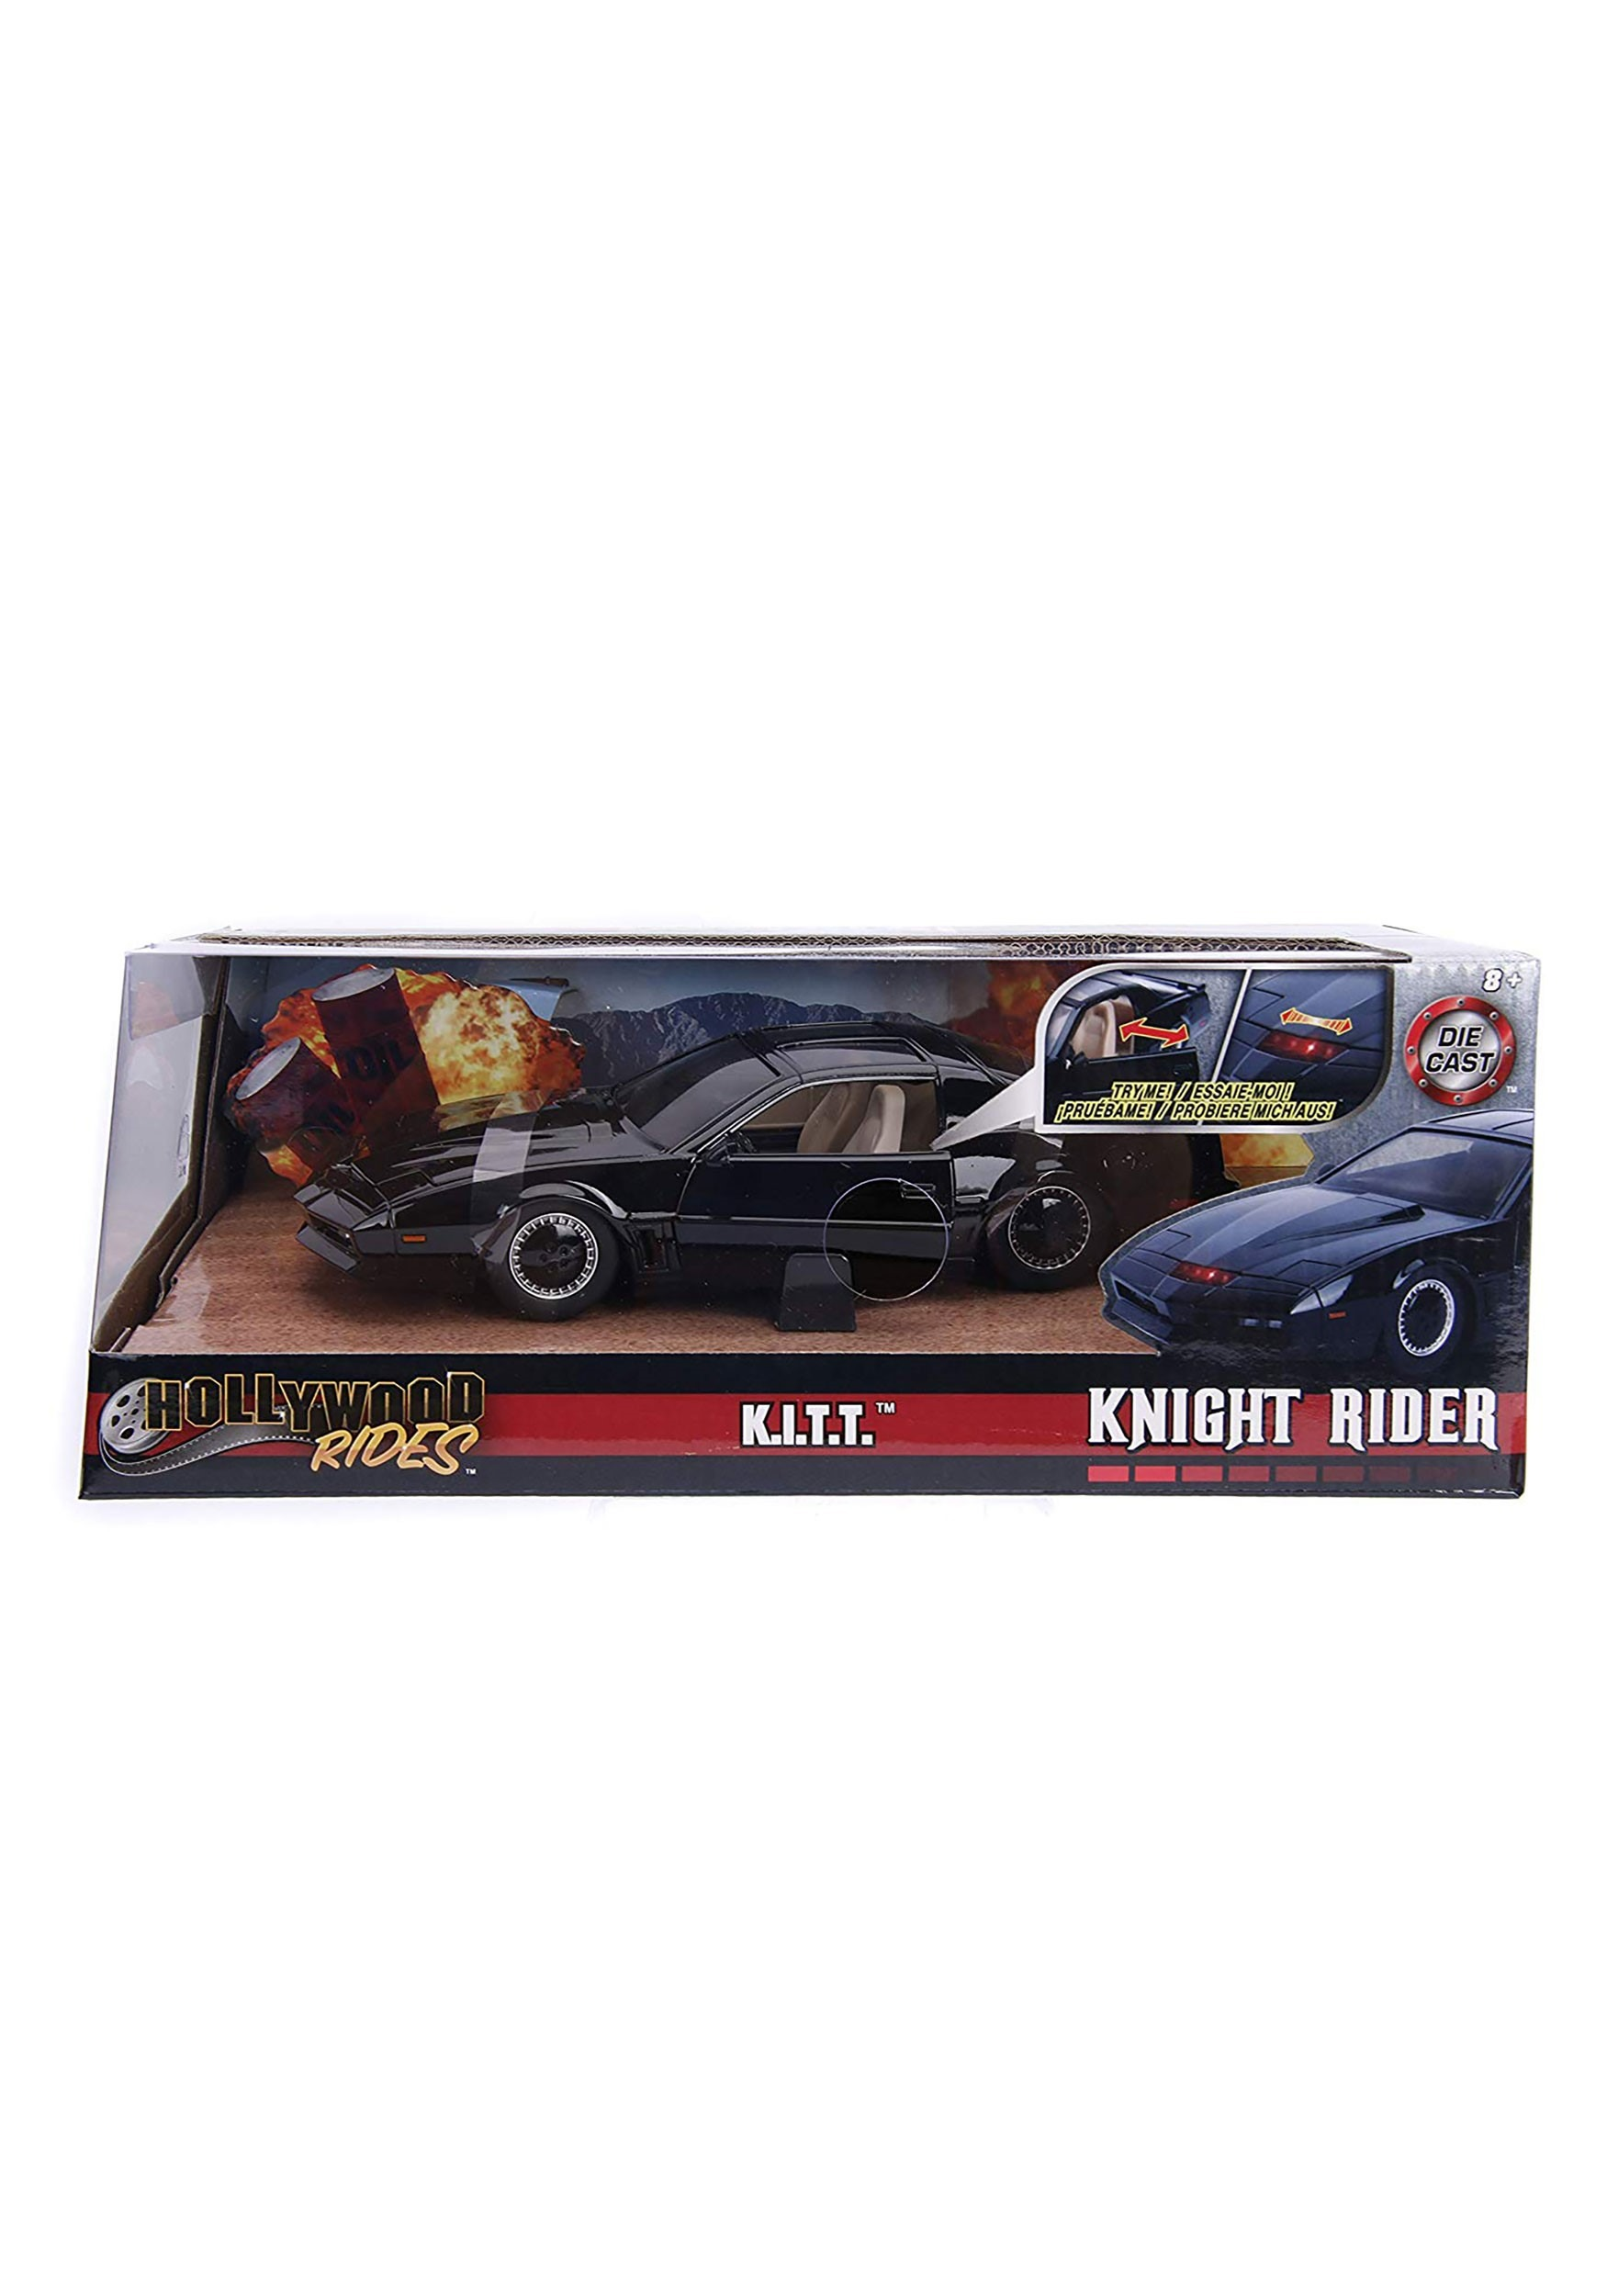 Knight Rider Car For Sale >> Hollywood Rides K.I.T.T. Knight Rider 1:24 Die Cast Vehicle w/ Light